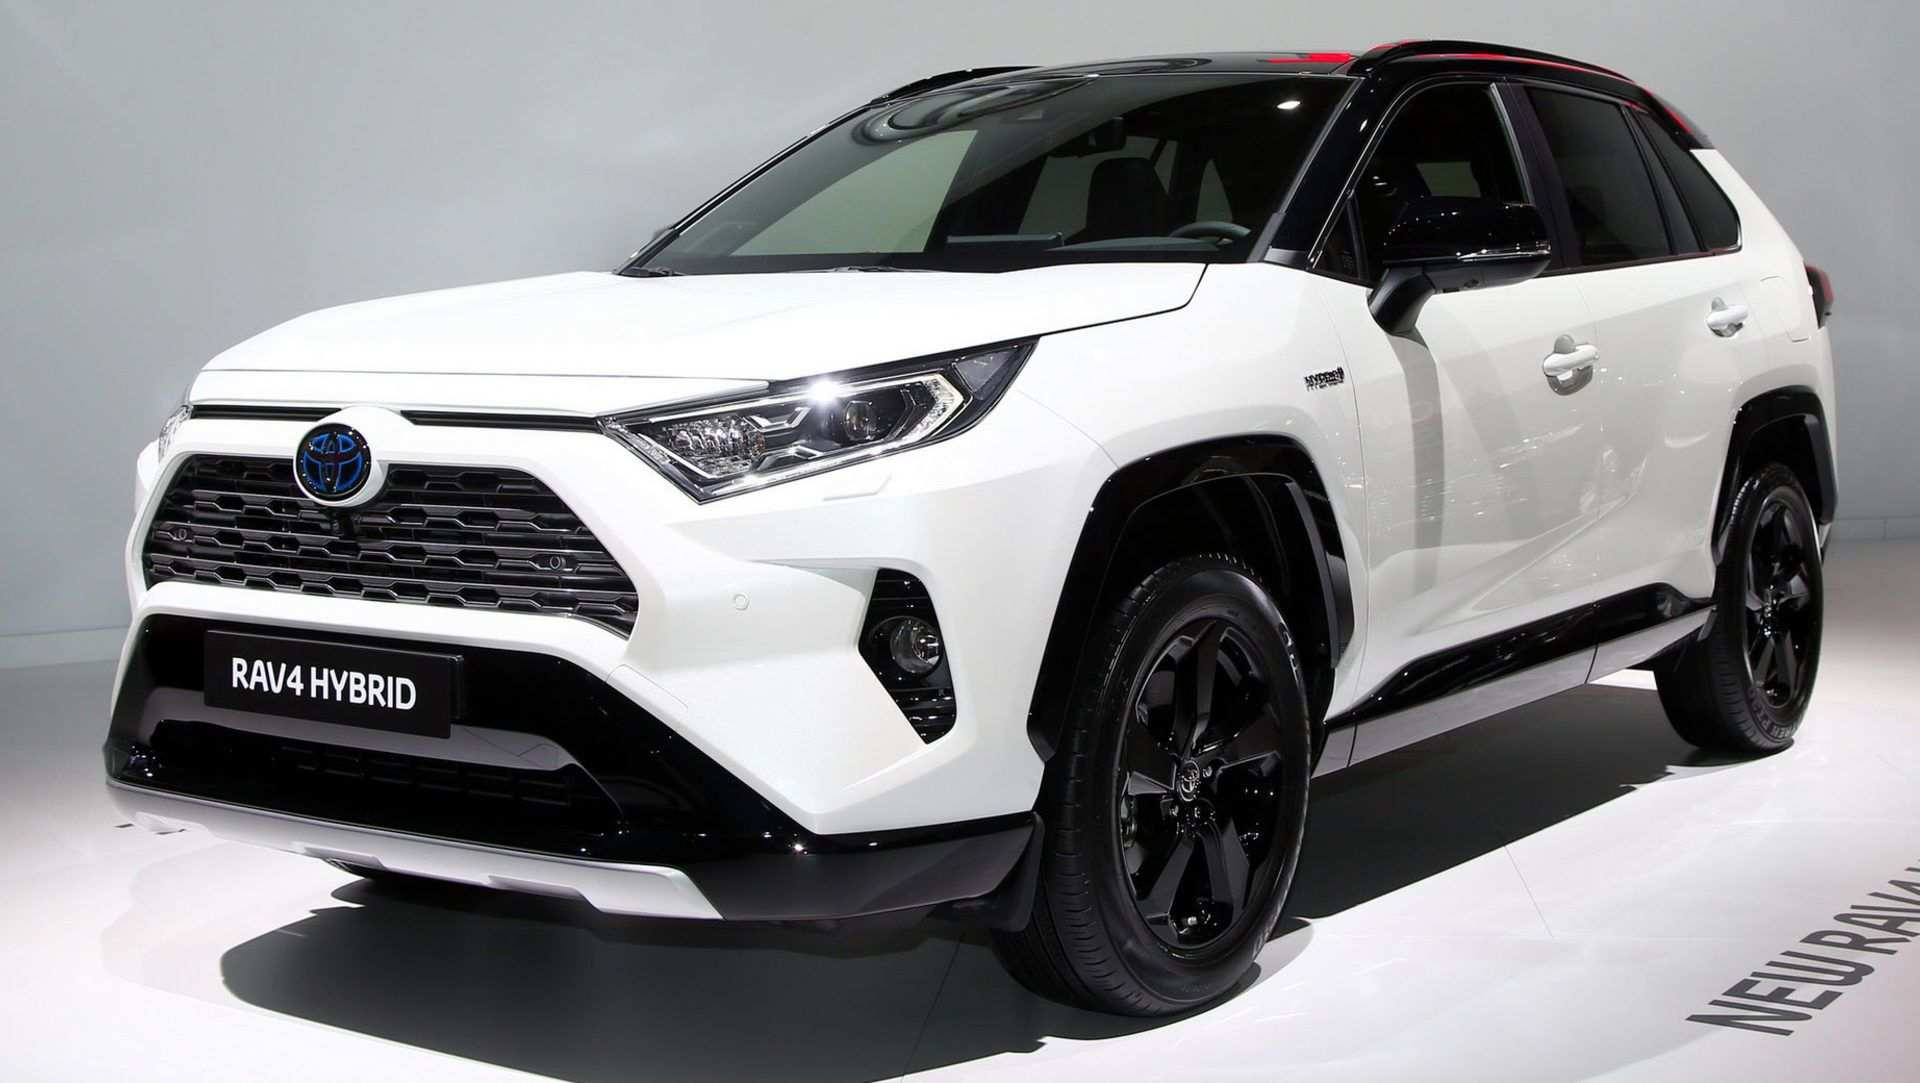 54 All New Toyota Rav4 2020 Uk Release for Toyota Rav4 2020 Uk